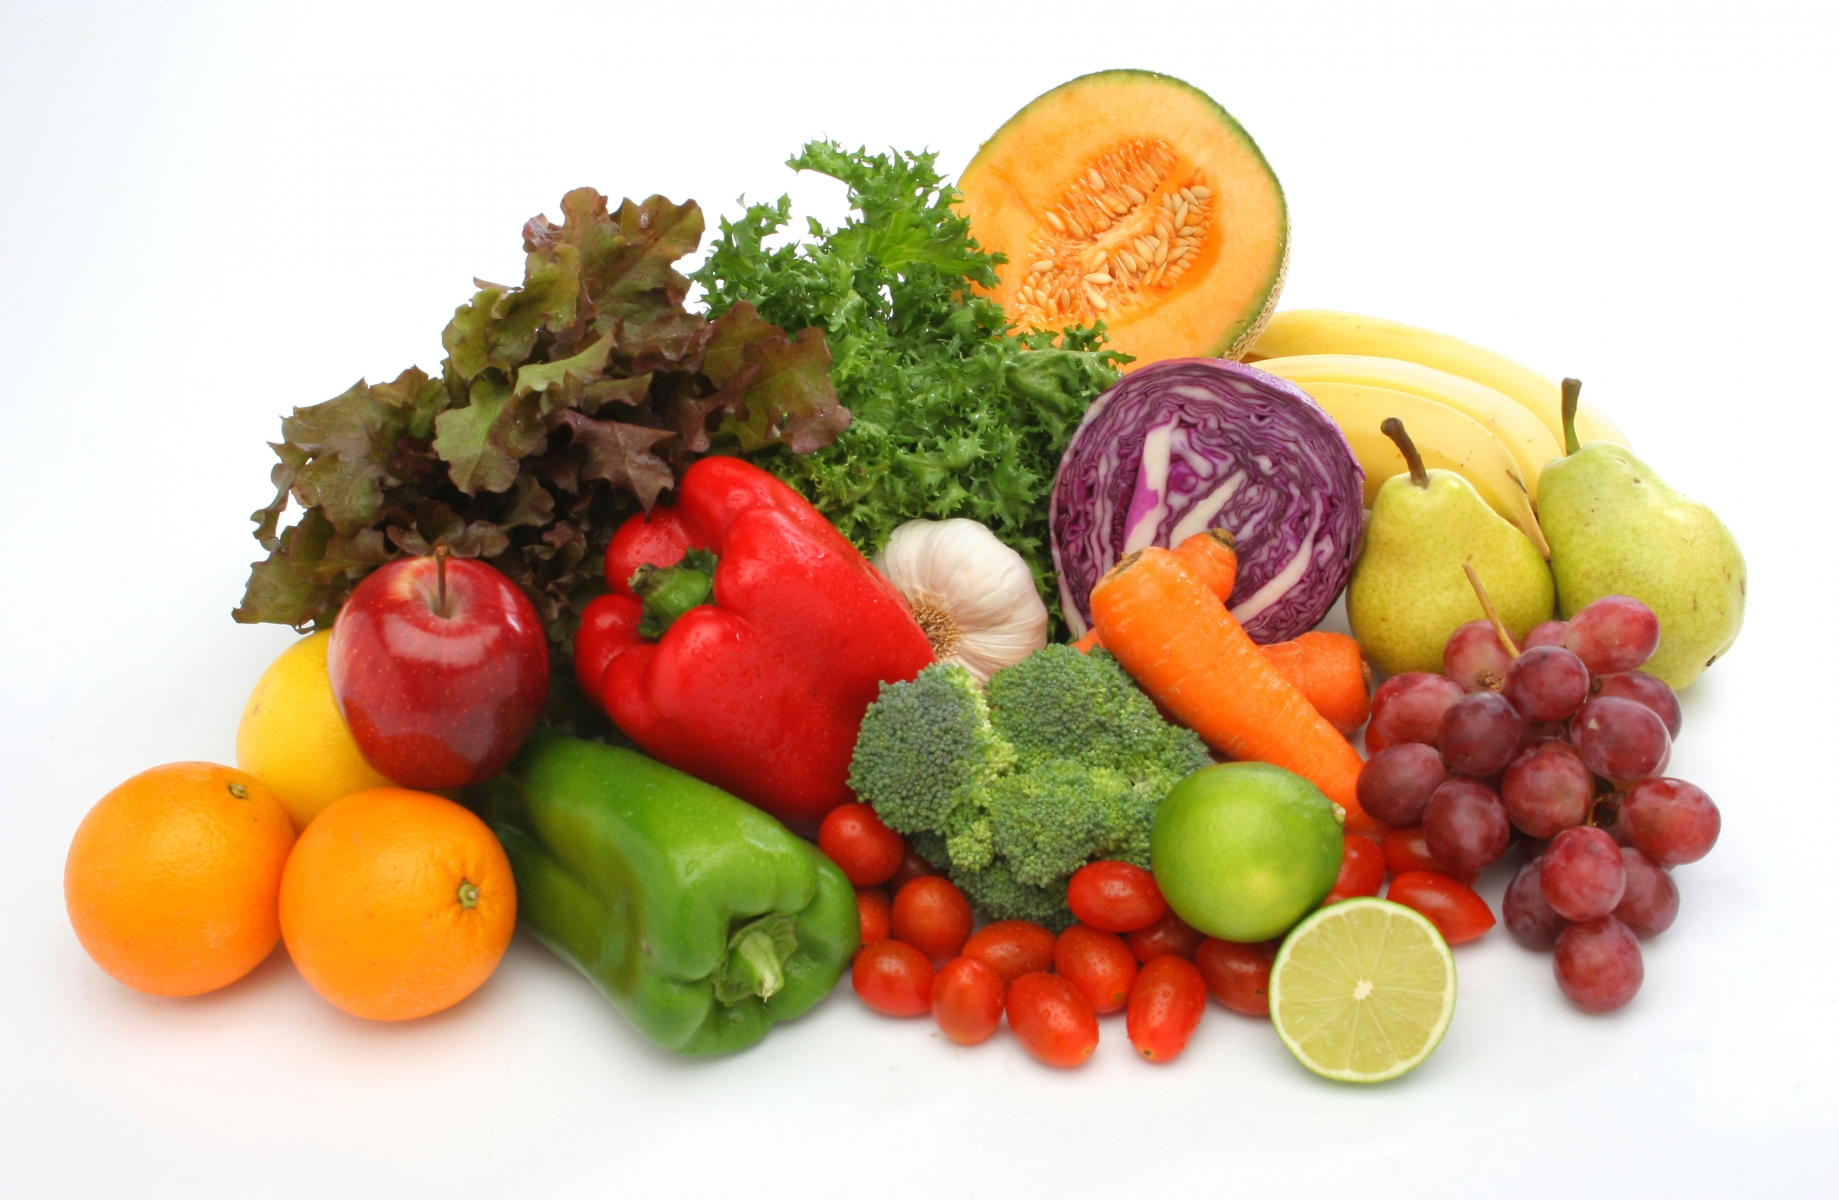 115619-colorful-fresh-group-of-vegetables-and-fruits.jpg